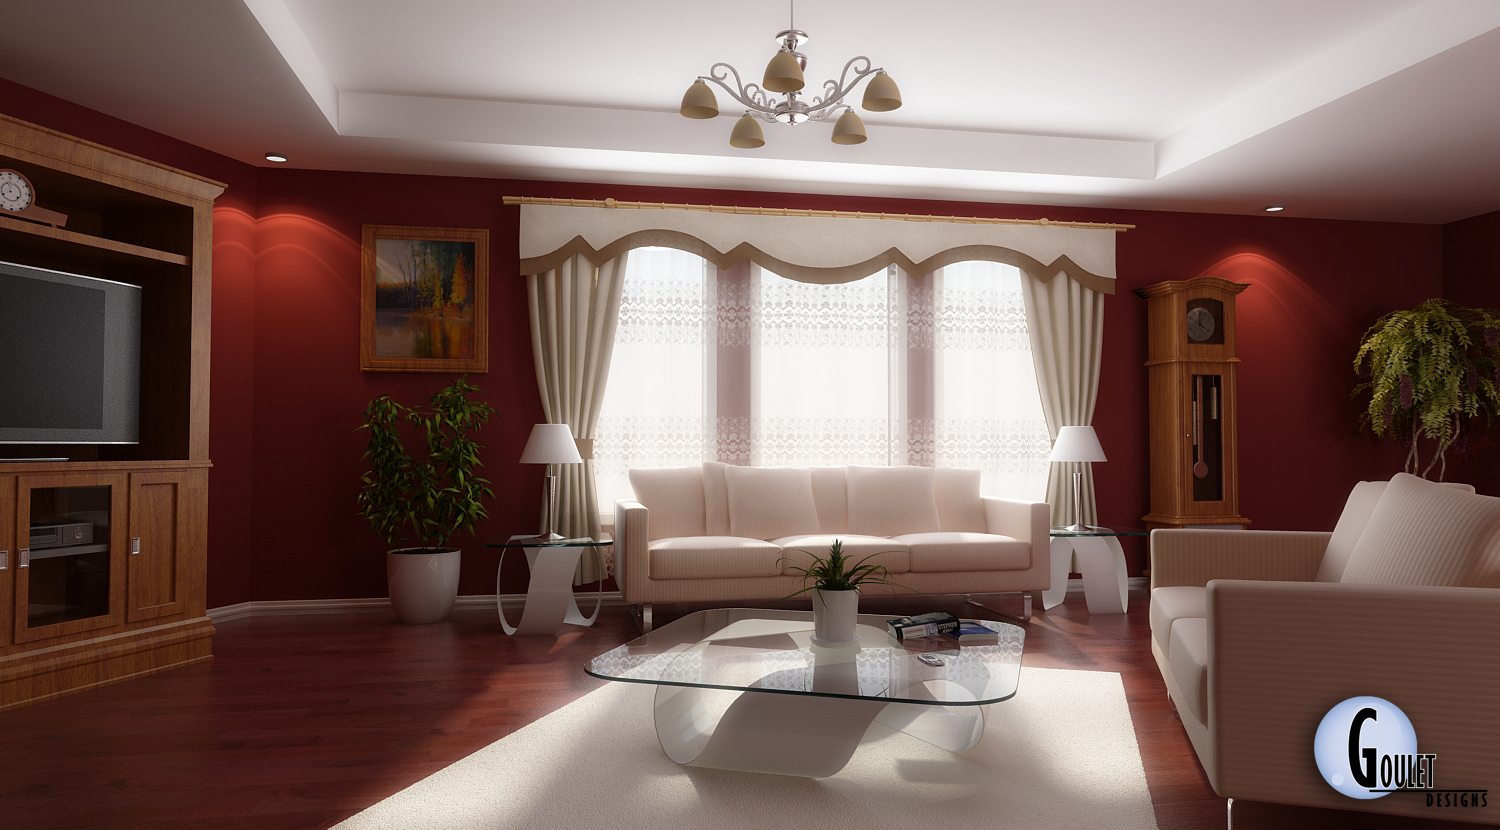 Living room decorating home designer for Decor ideas living room